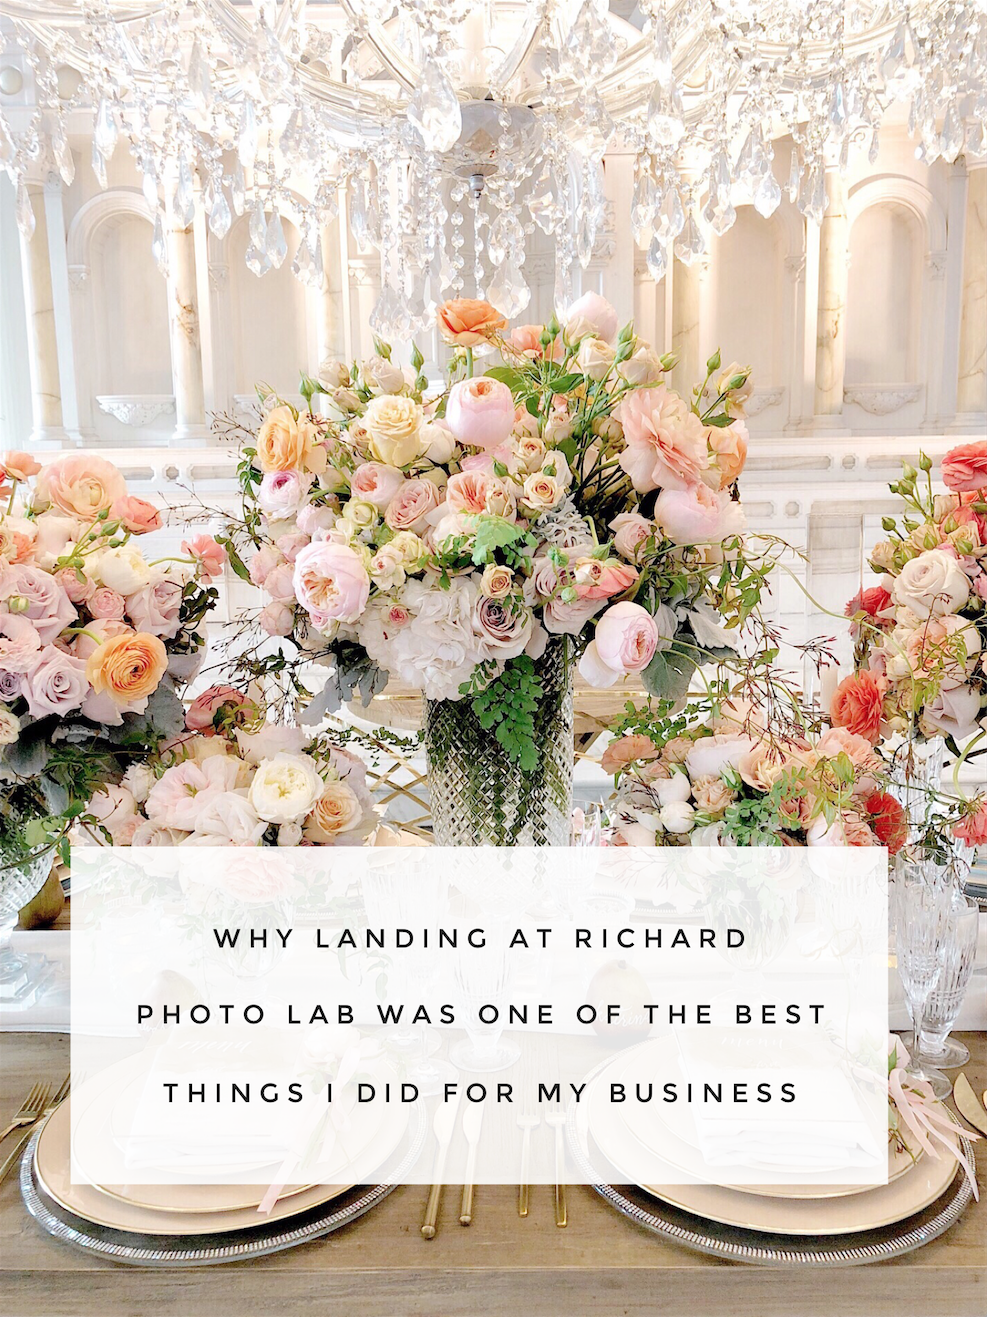 Why Richard photo Lab - For photographers